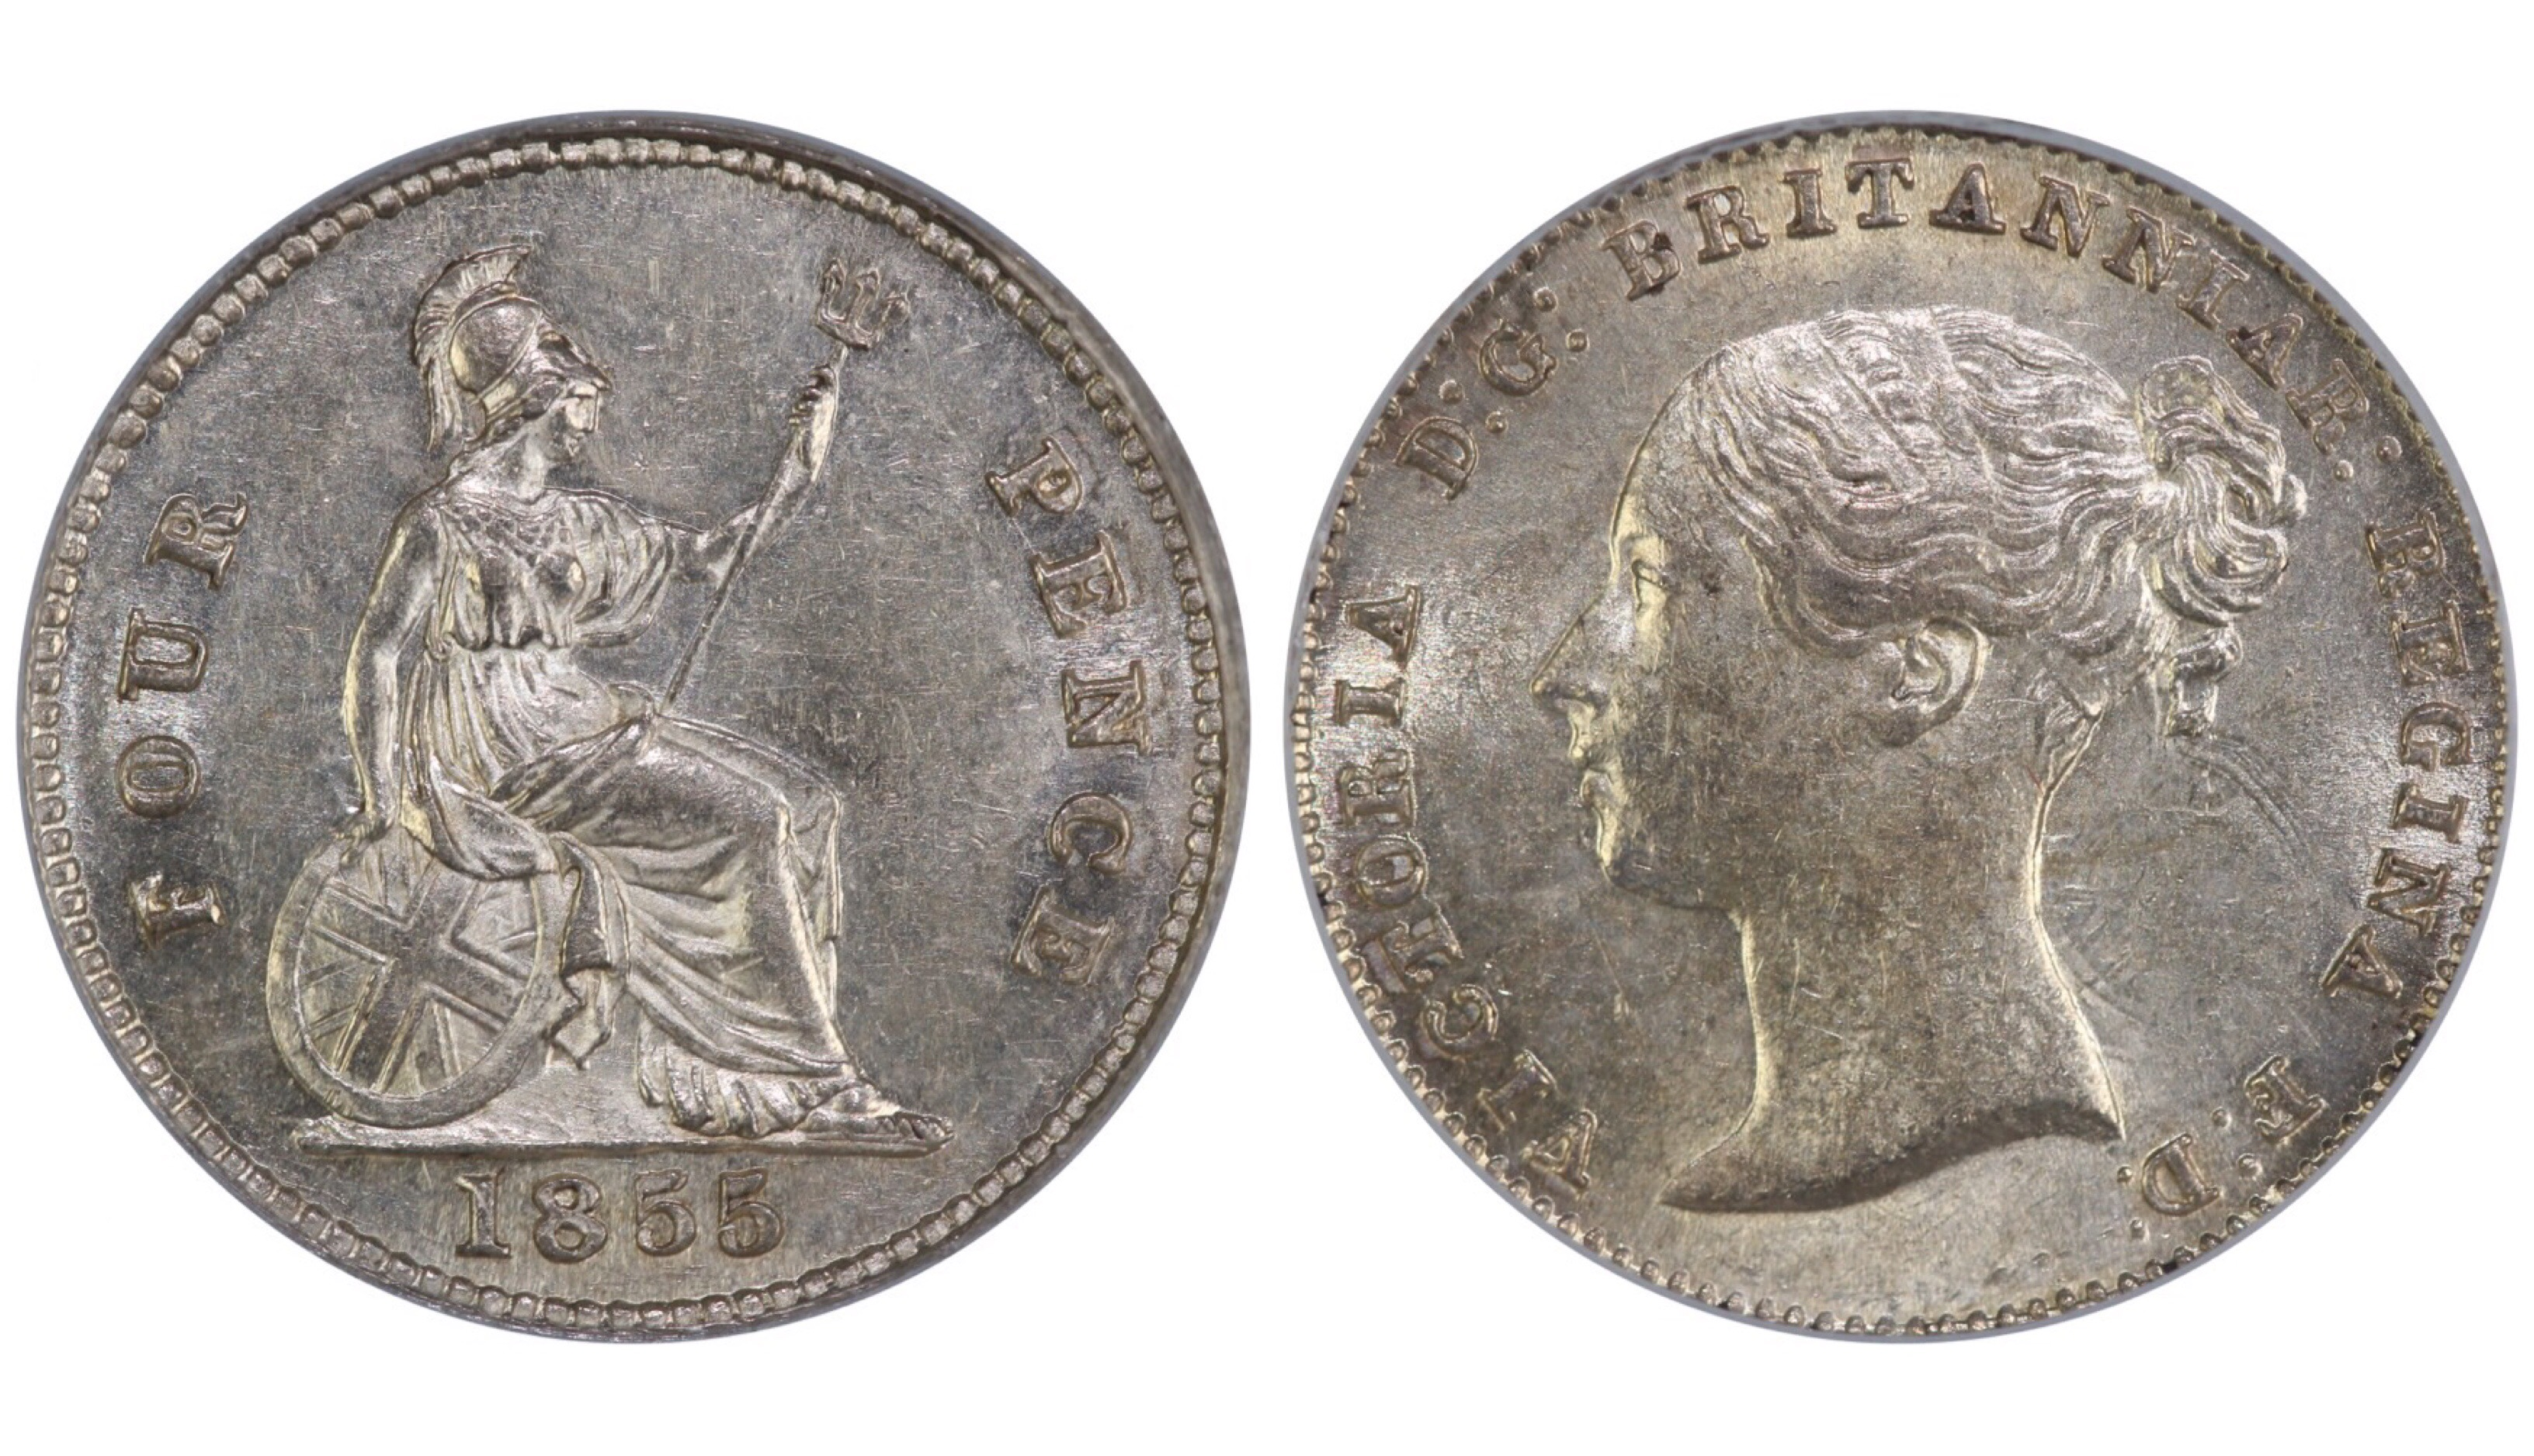 1855 Groat, CGS 65, Victoria, ESC 1953, UIN 16419- Sold at FB auction